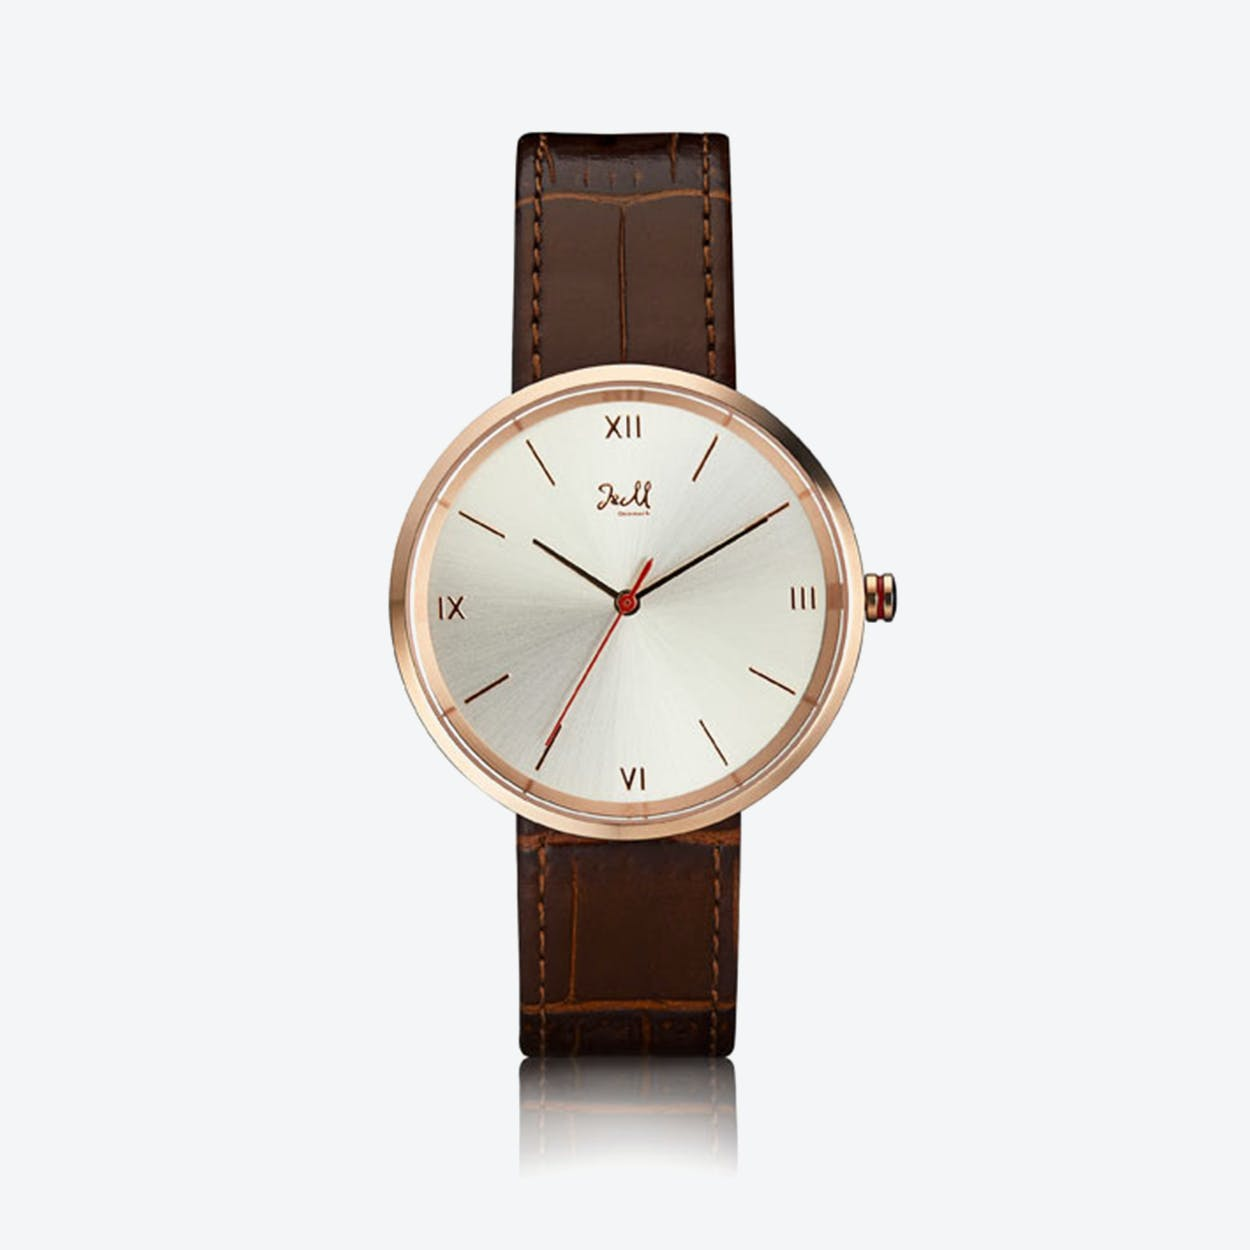 J&M Watch M Nordic360 M2 in Rose Gold with Dark Brown Leather Strap